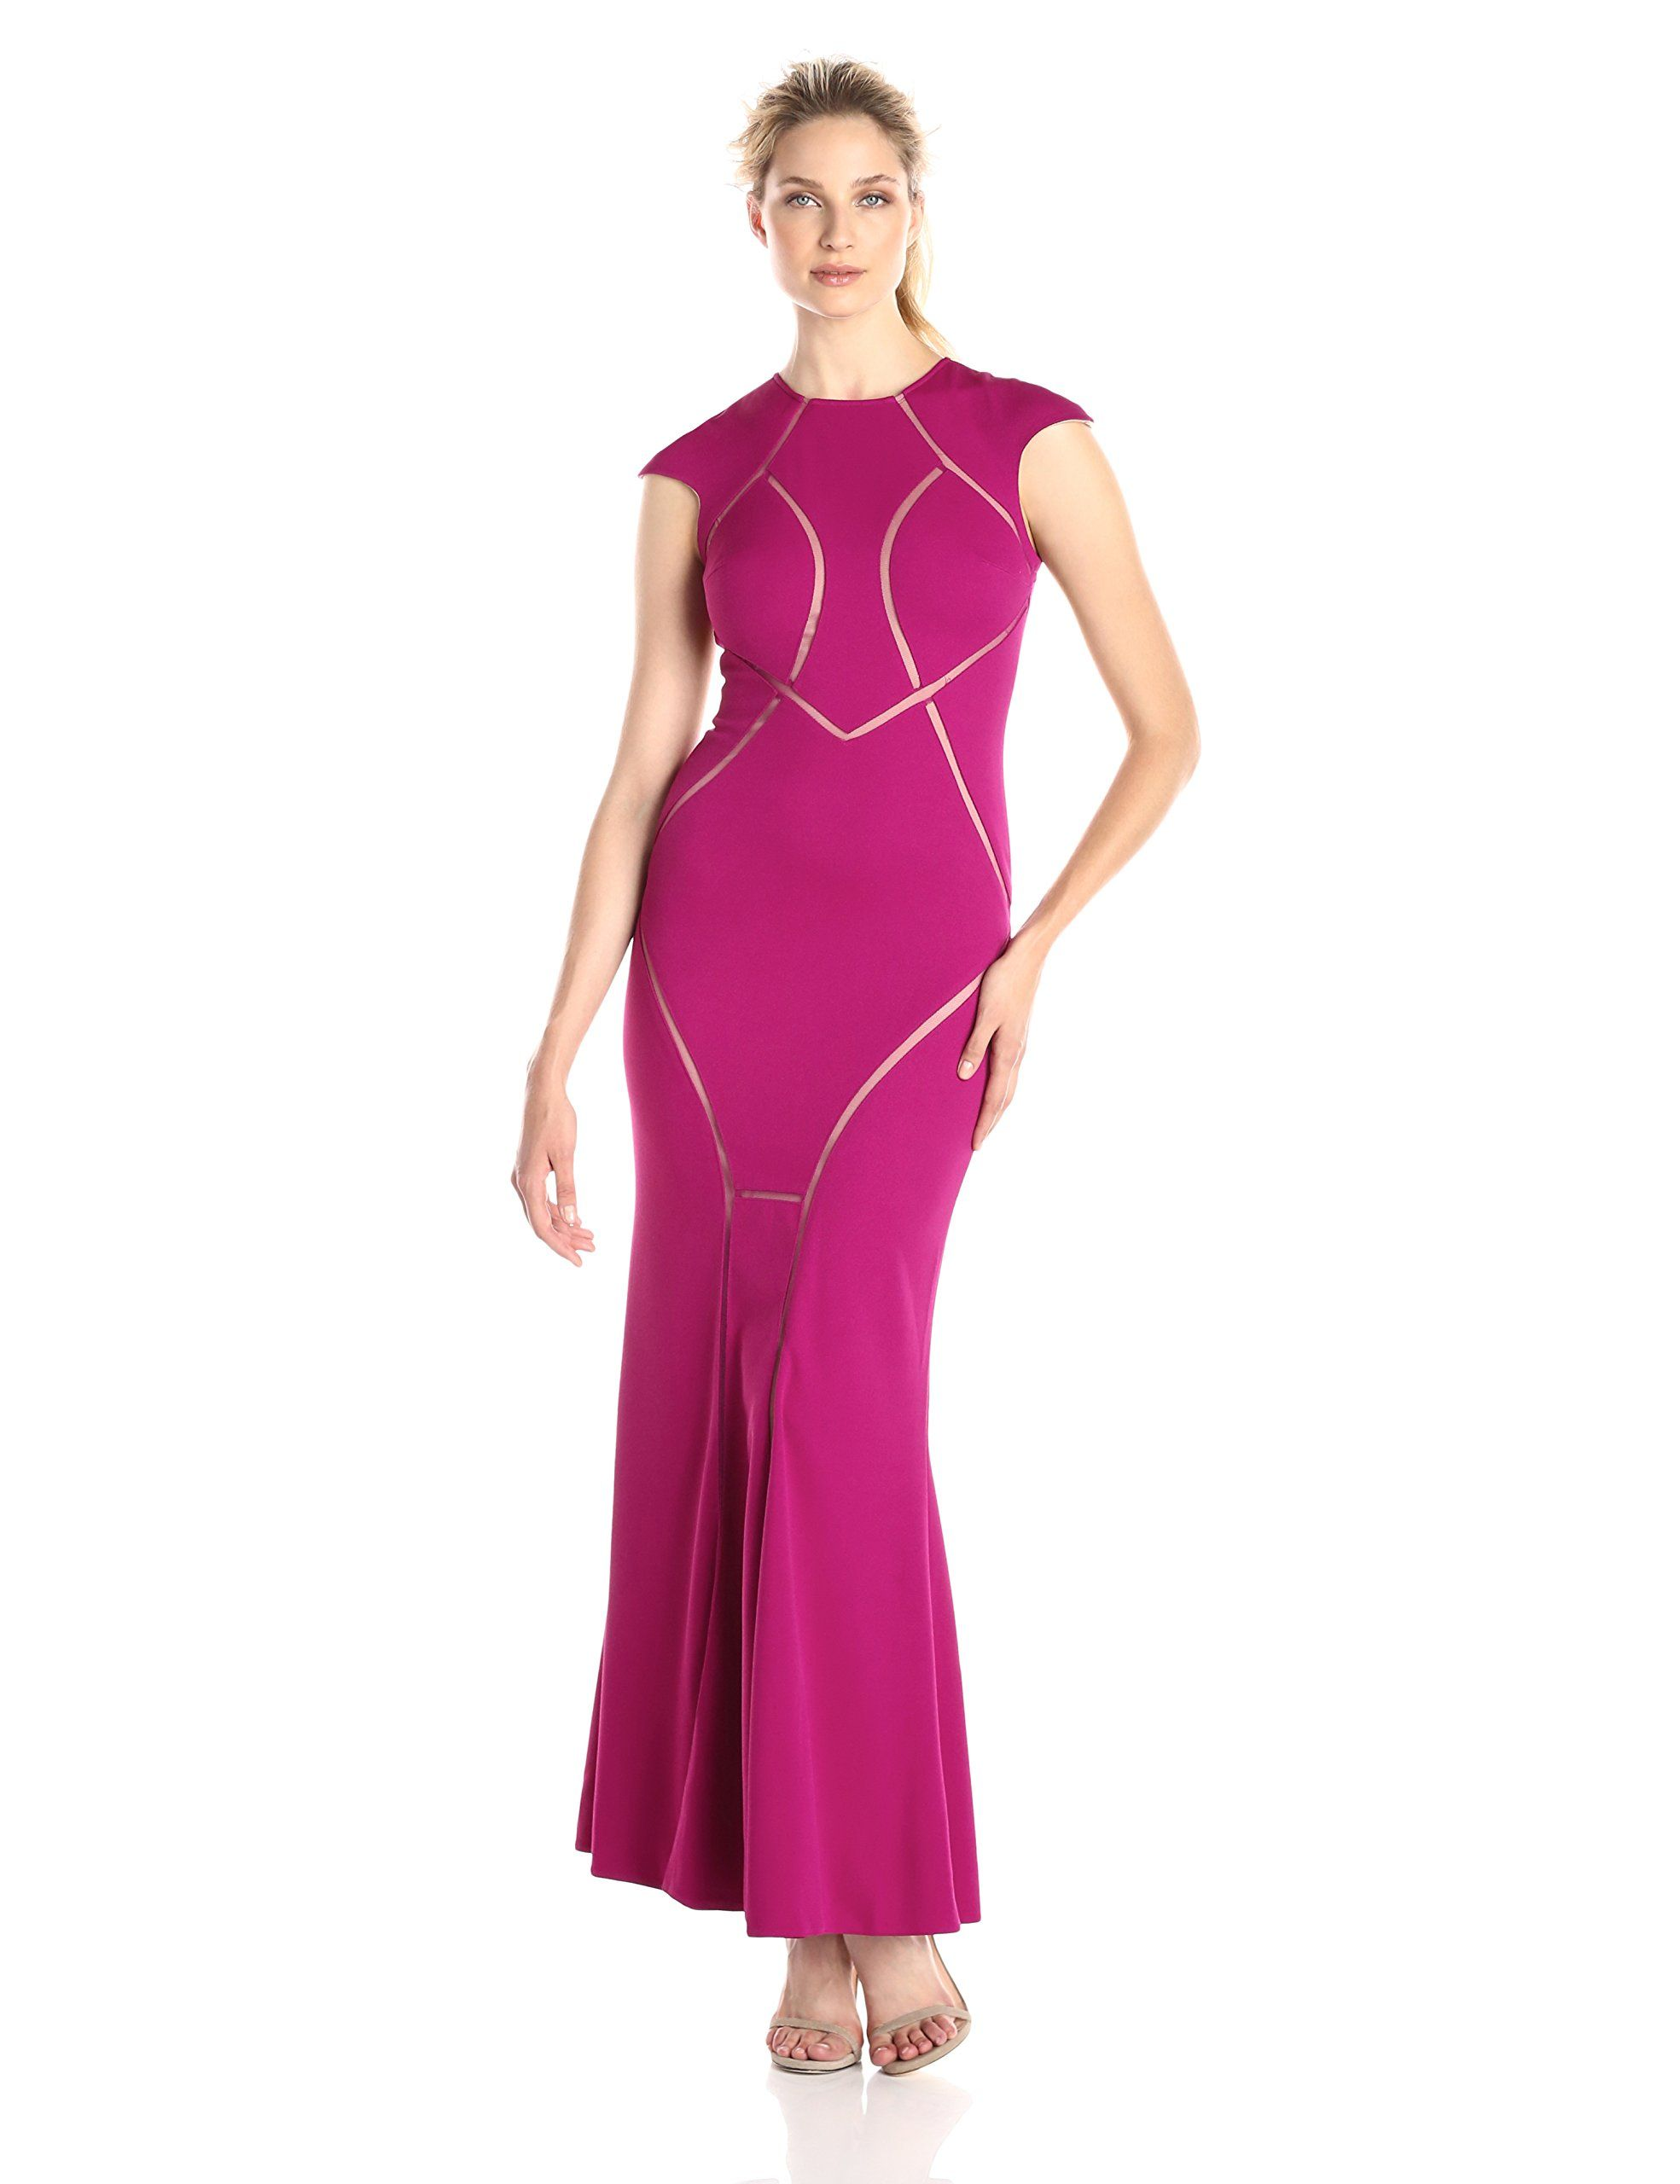 Js collection womenus stretch crepe and mesh contoured illusion cut